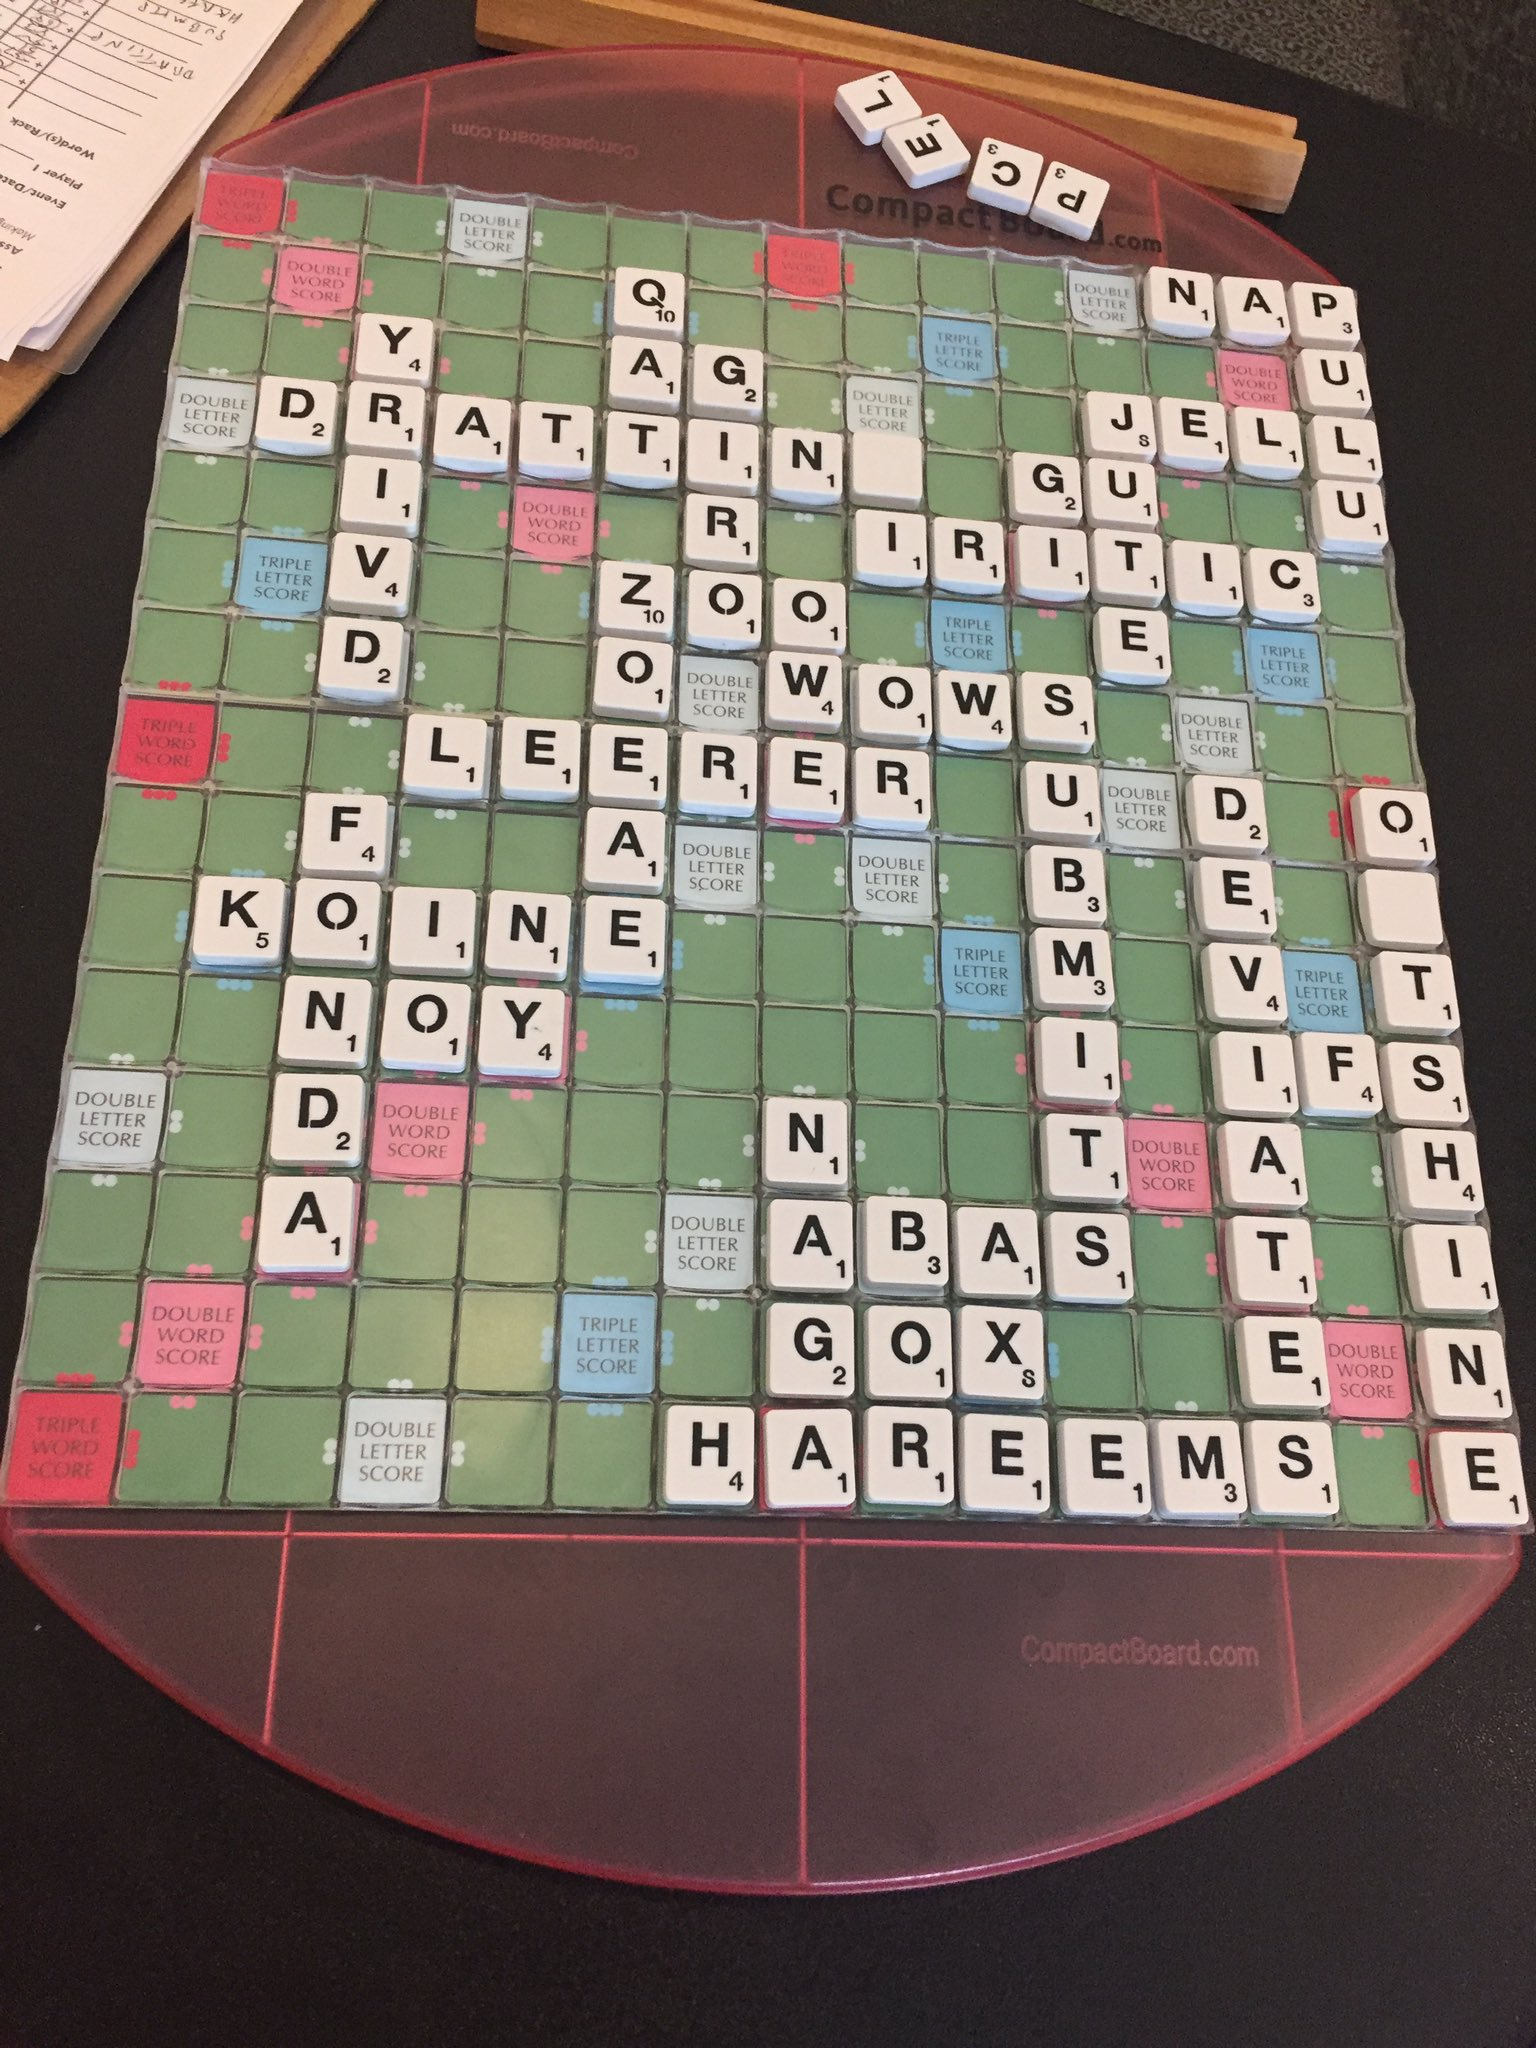 #NiagaraScrabble2017 R24: Leslie Charles 546 Andy Saunders 317 #scrabble https://t.co/48ytwDDvcG